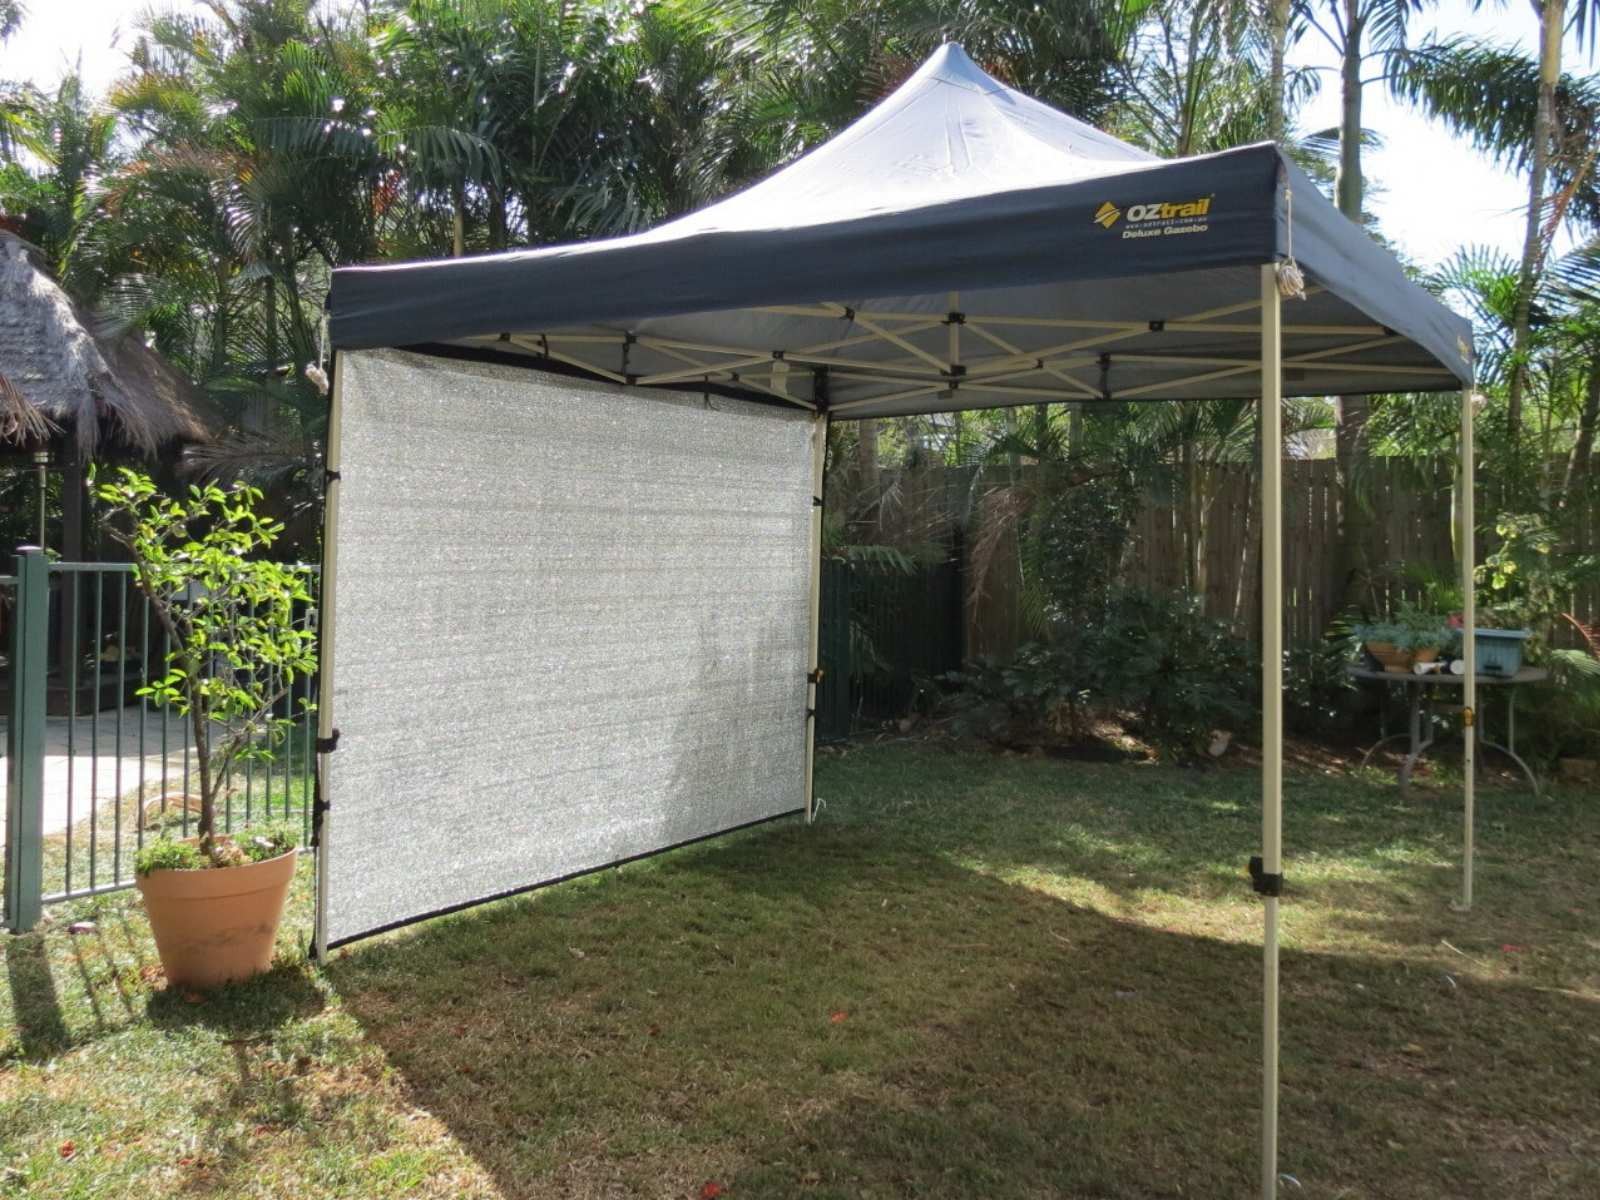 Gazebo wall for shade